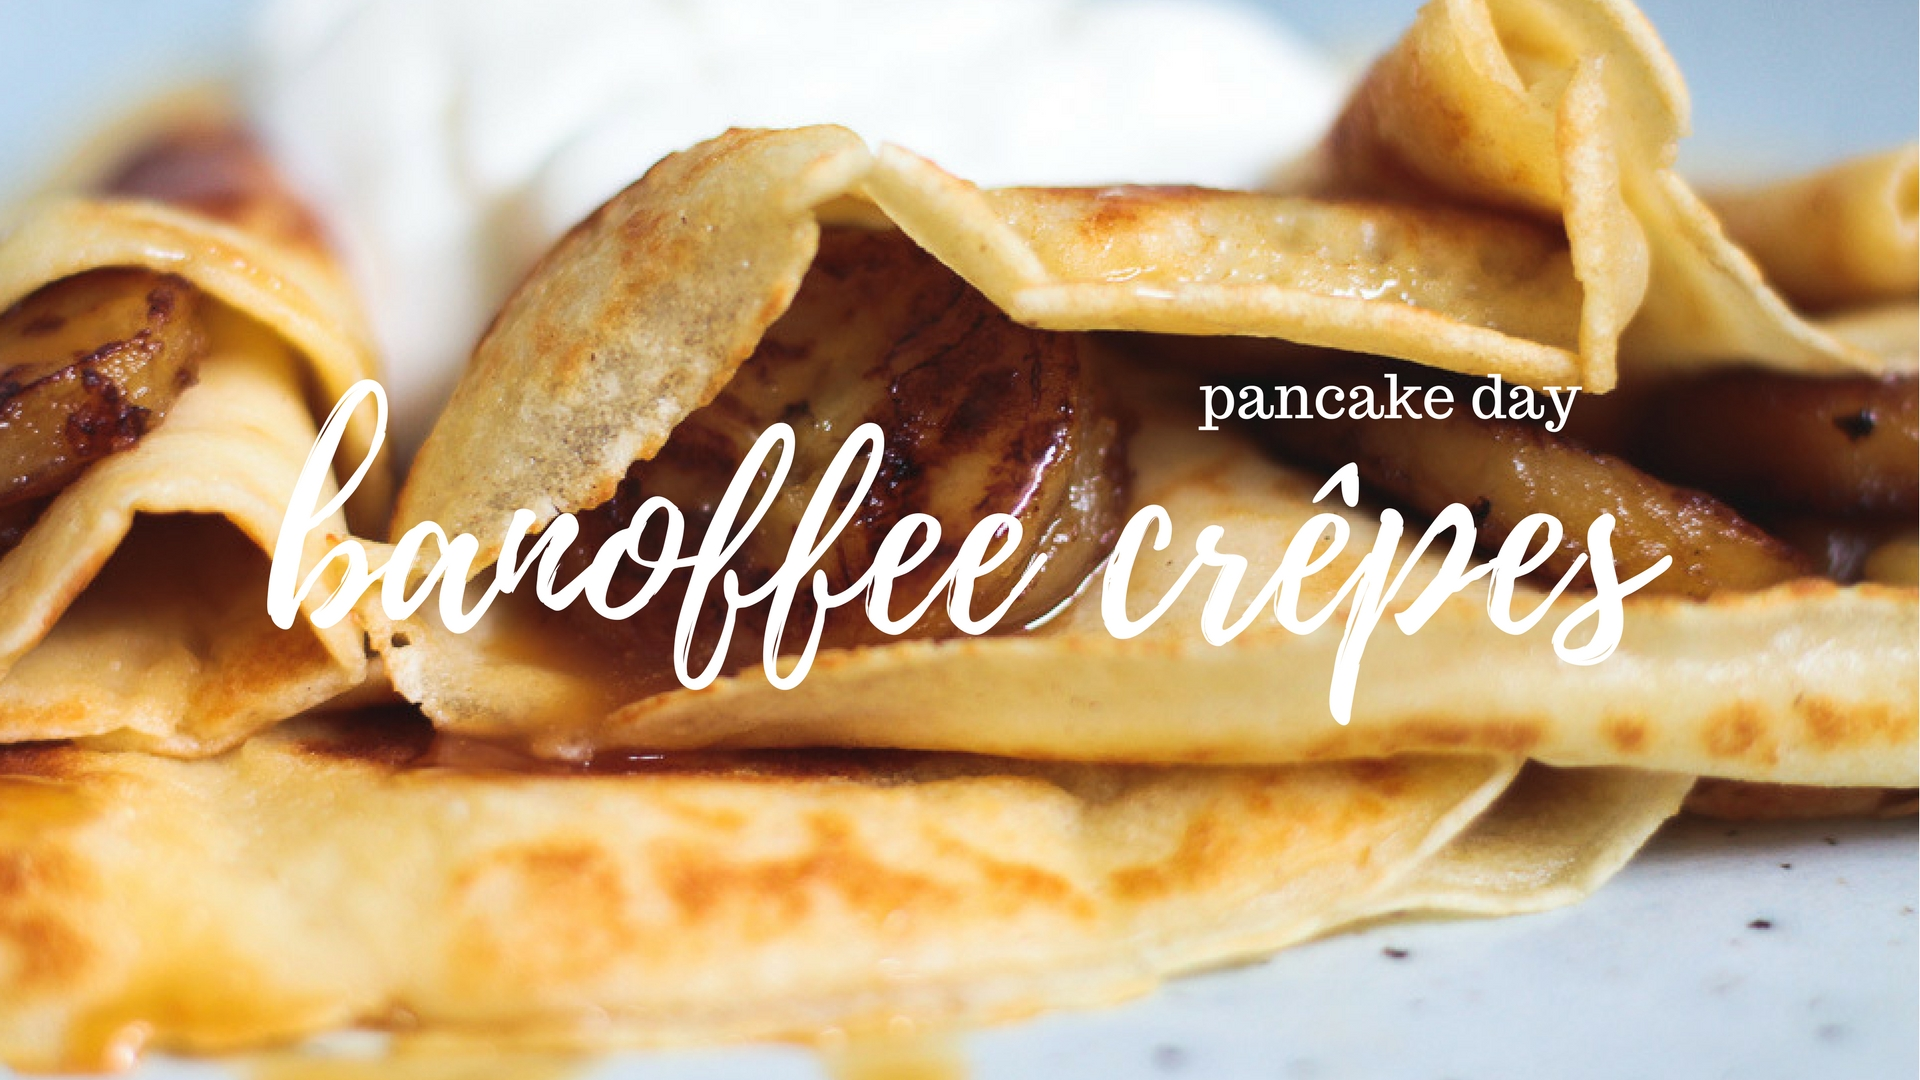 pancake day recipe - banana crepes - food blog sophie's scran